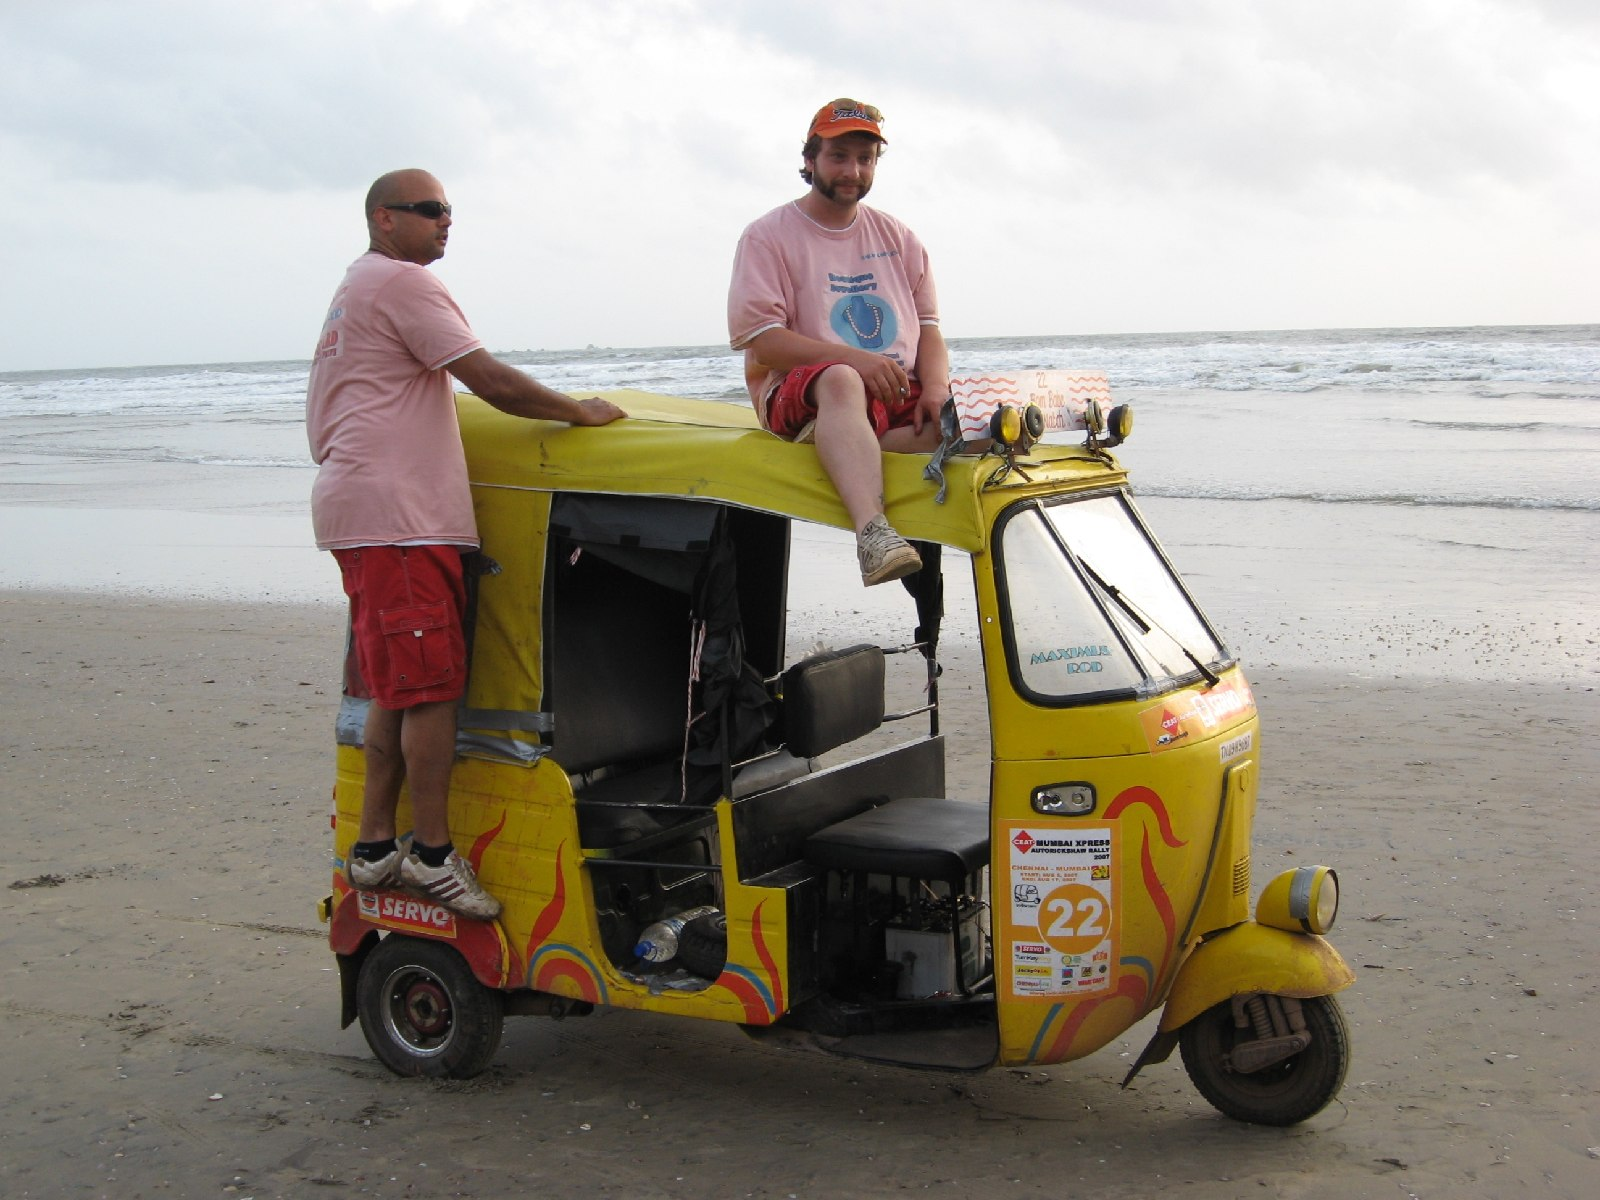 The Rickshaw Challenge - A Three Wheeled Race Across India